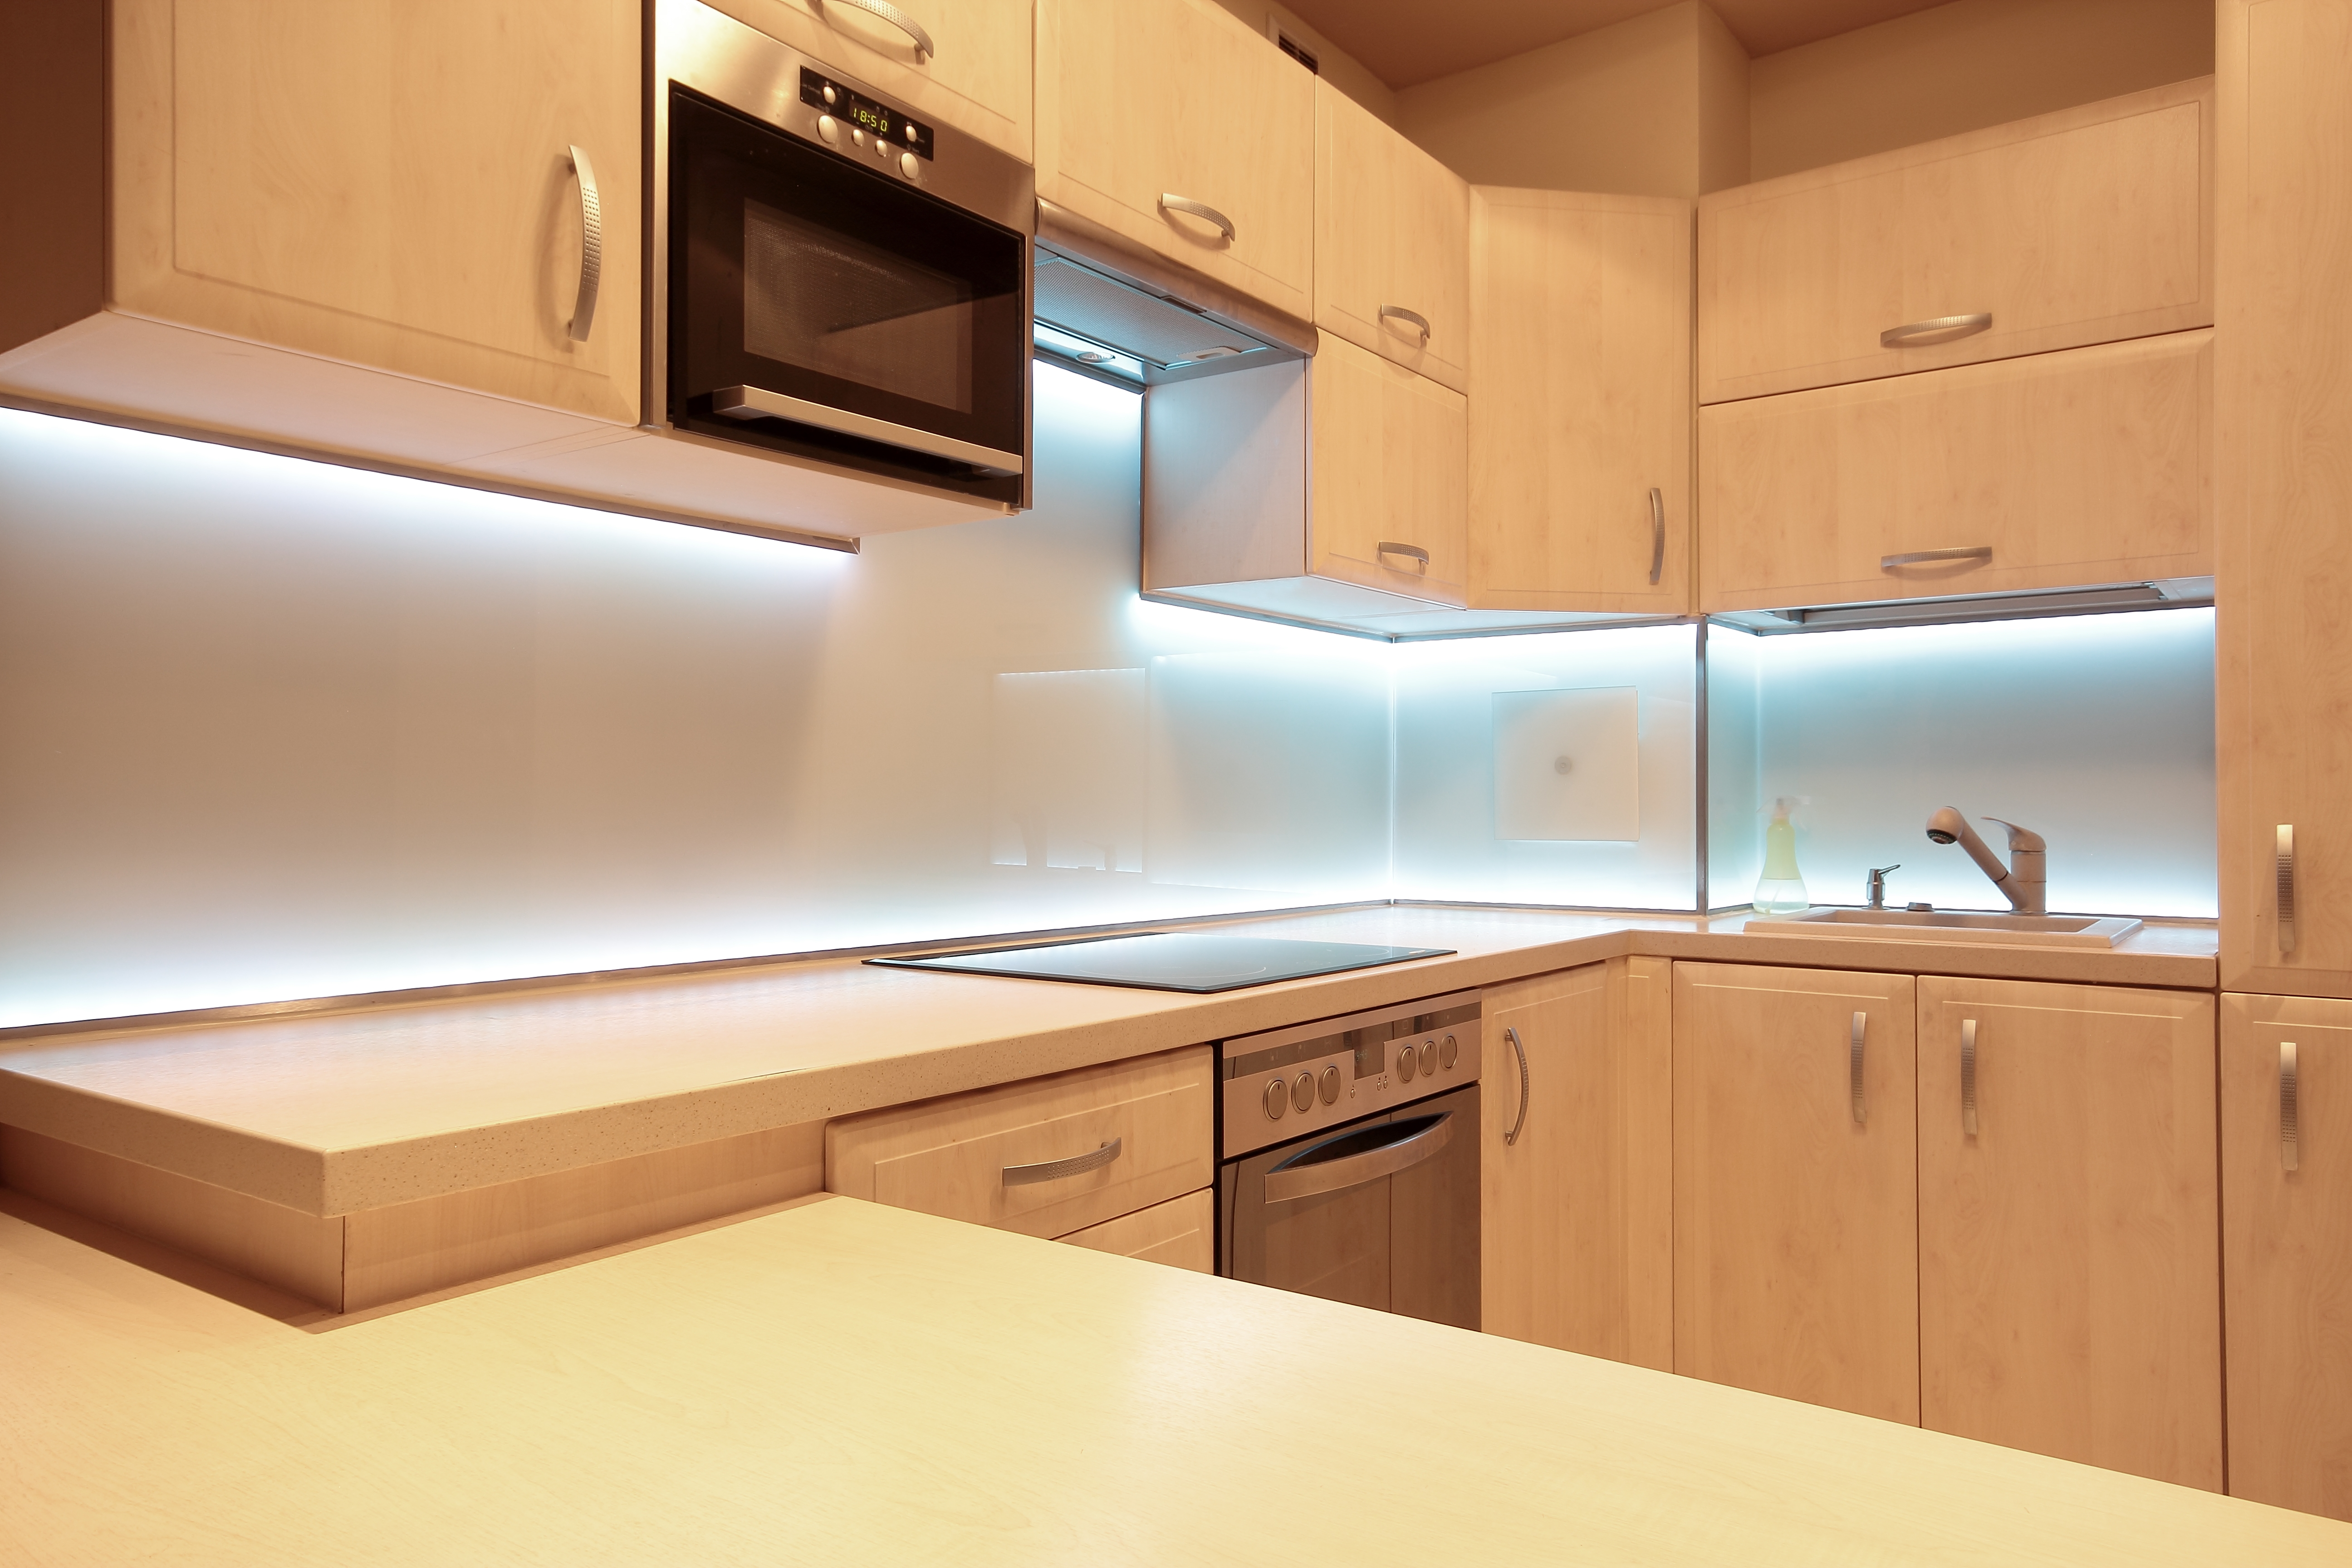 install shelf direct dimmable kitchen led to wire cabinets lighting under how geundercounter cabinet e